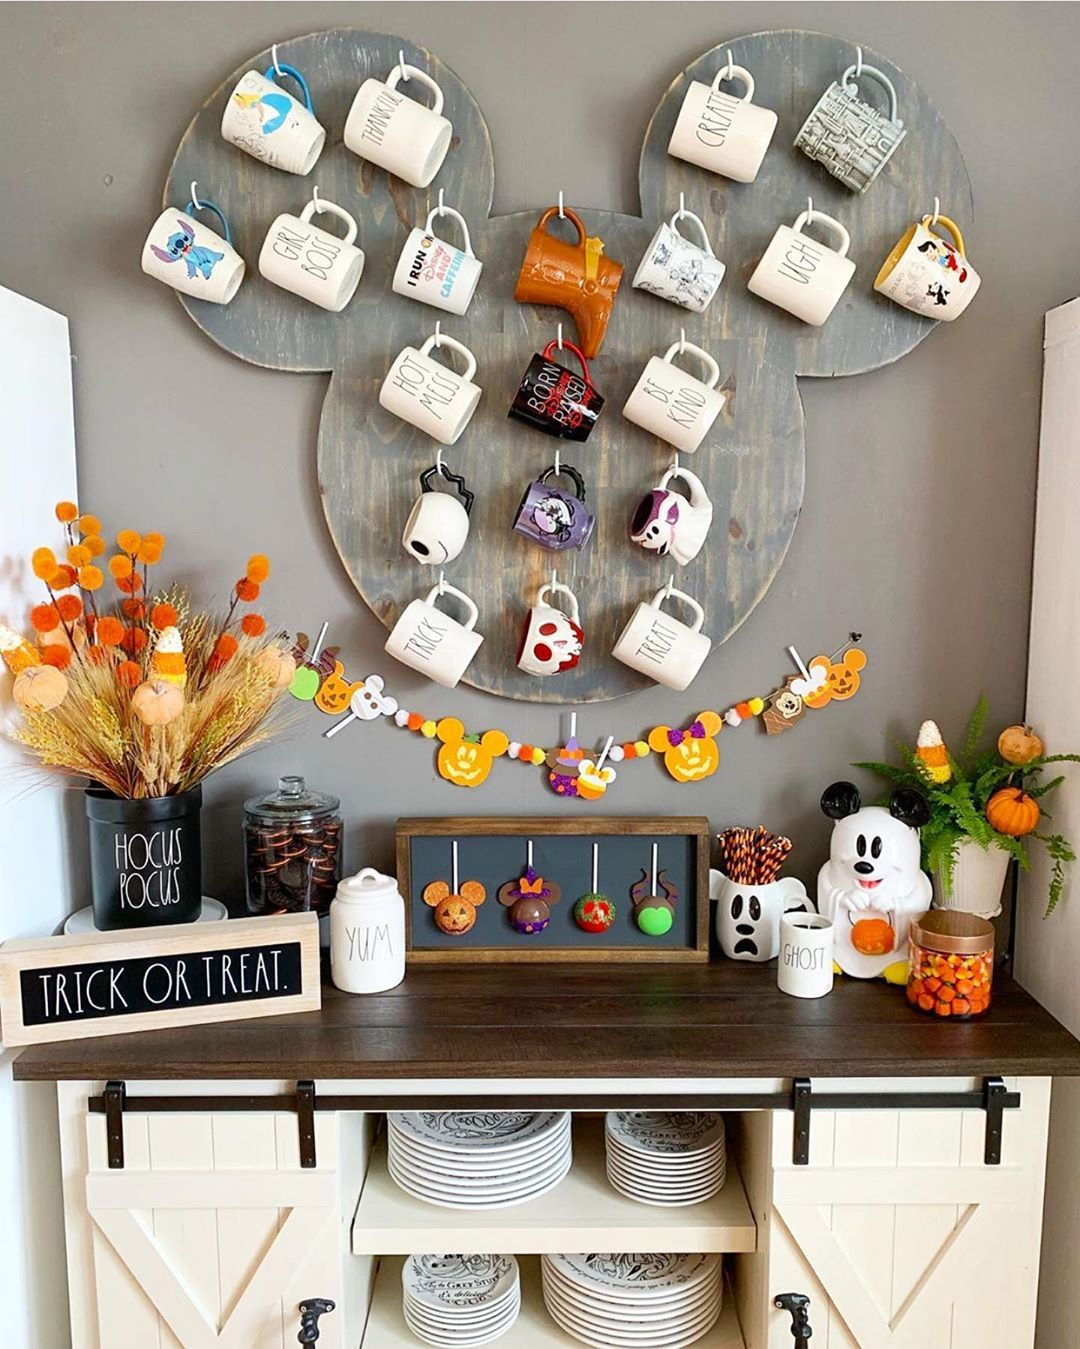 Disney At Home On Instagram Just When We Didn T Think Greatcrafternoon S Decor Couldn T Get More Pe Disney Room Decor Disney Home Decor Disney Kitchen Decor